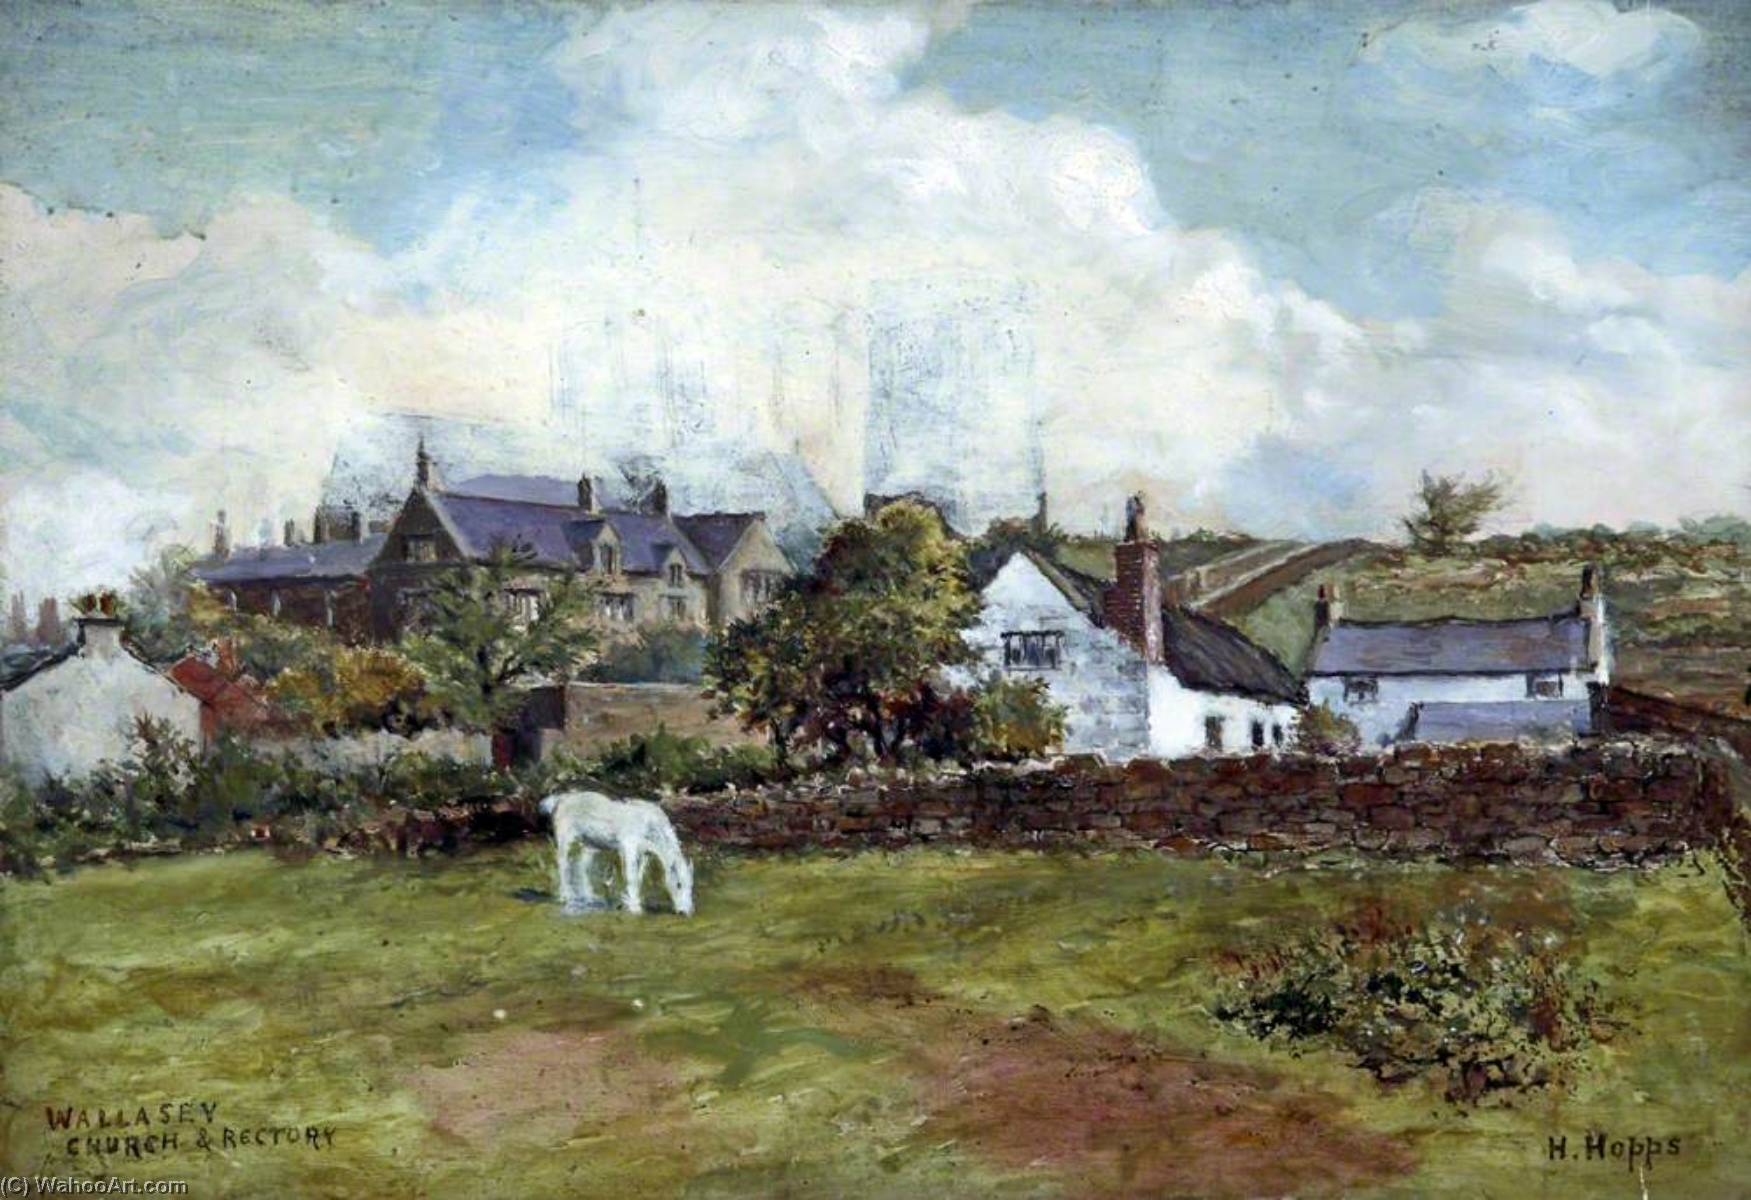 Wallasey Church and Rectory, Wirral by Harold Hopps | Oil Painting | WahooArt.com